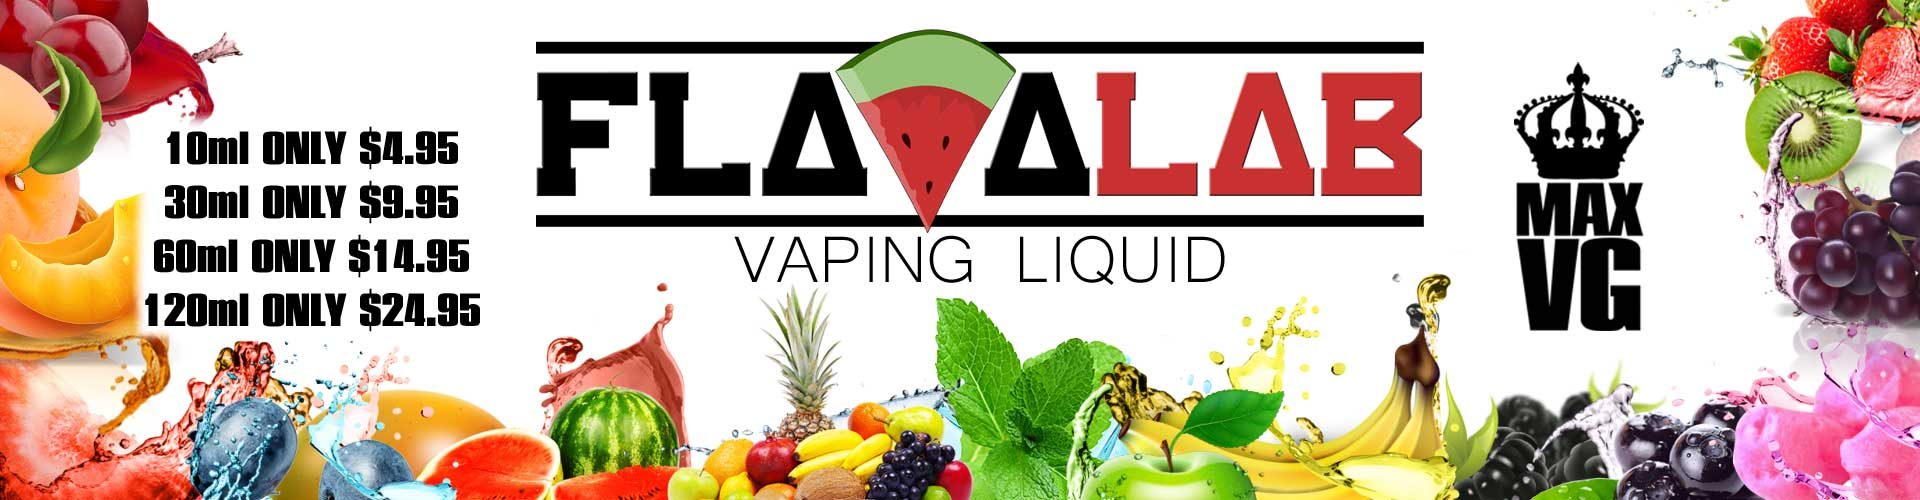 Flavalab Vaping Liquid